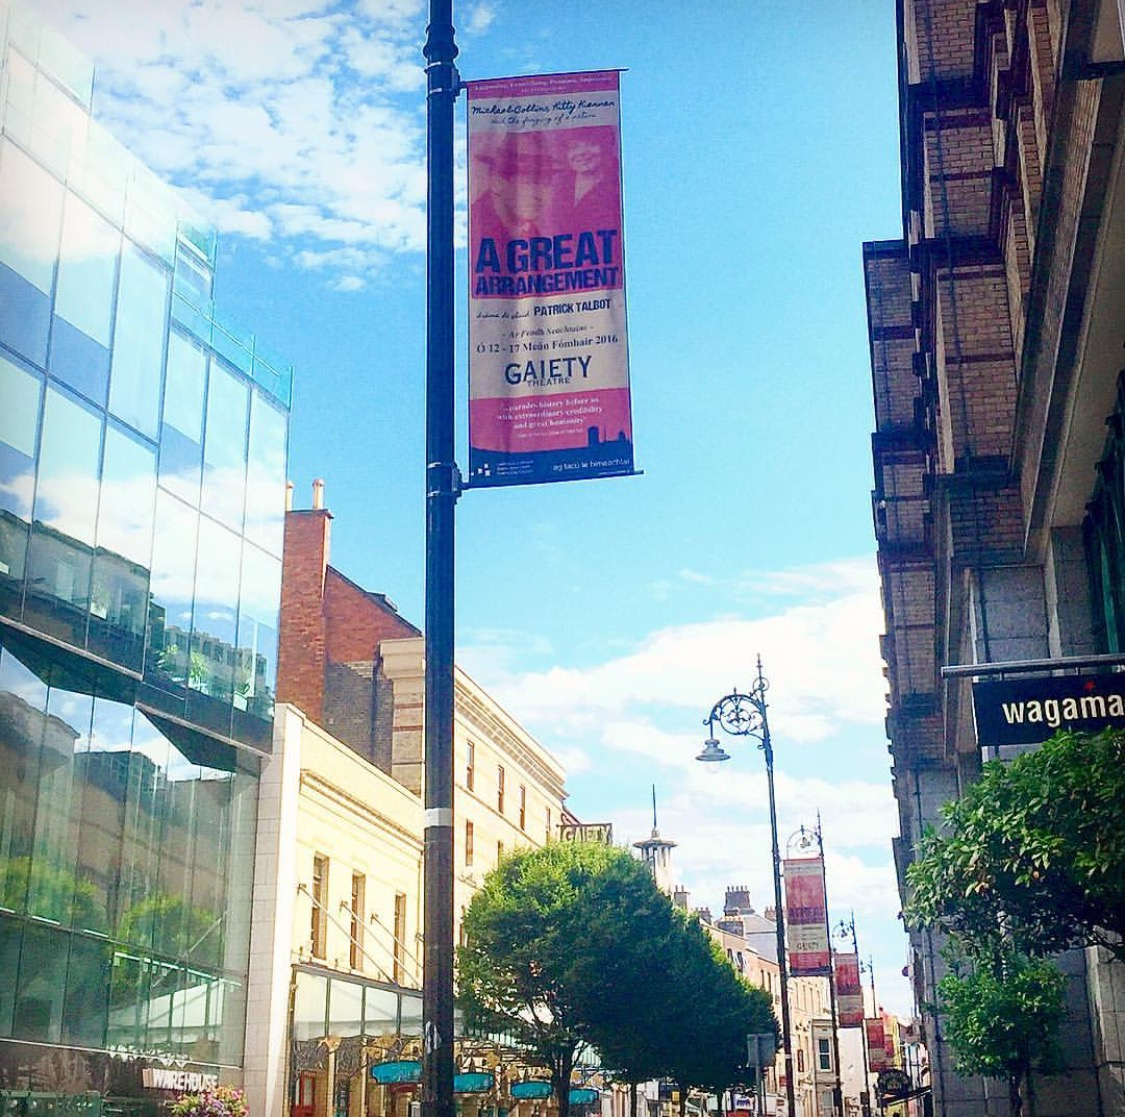 Gaiety Theatre Lamppost Banners